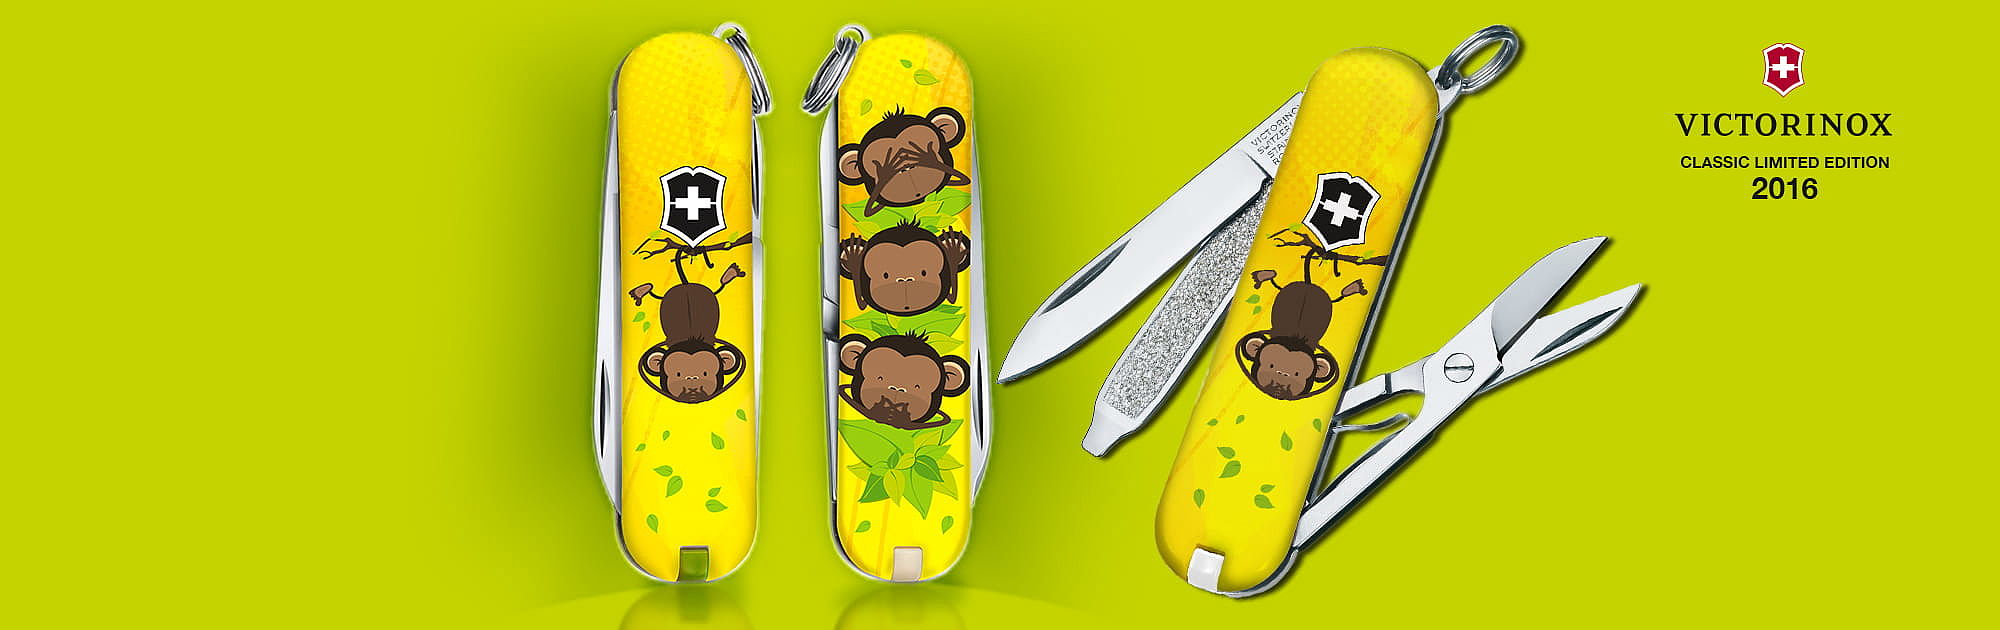 Graphic Design for Victorinox Swiss Army Knife